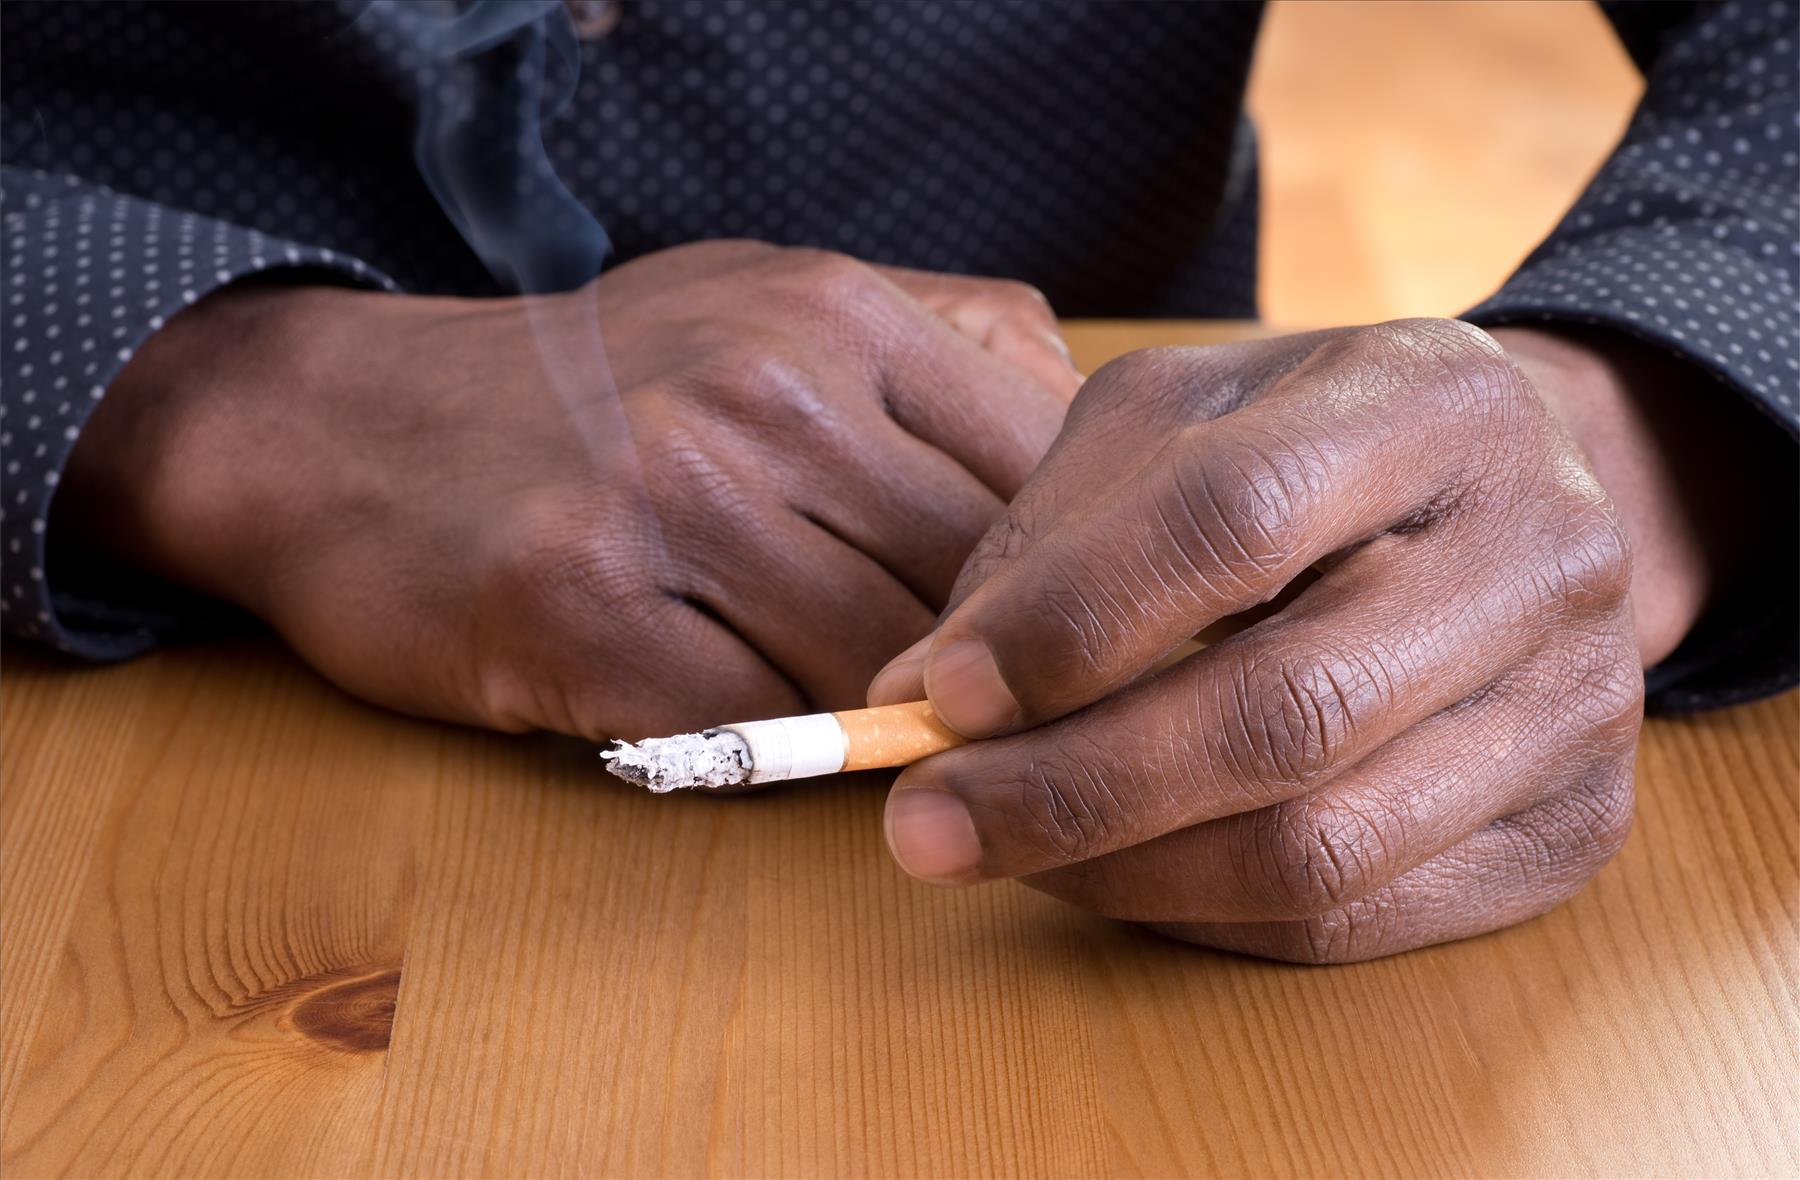 Uganda's Tobacco Control Act comes into force on 19th of May 2016